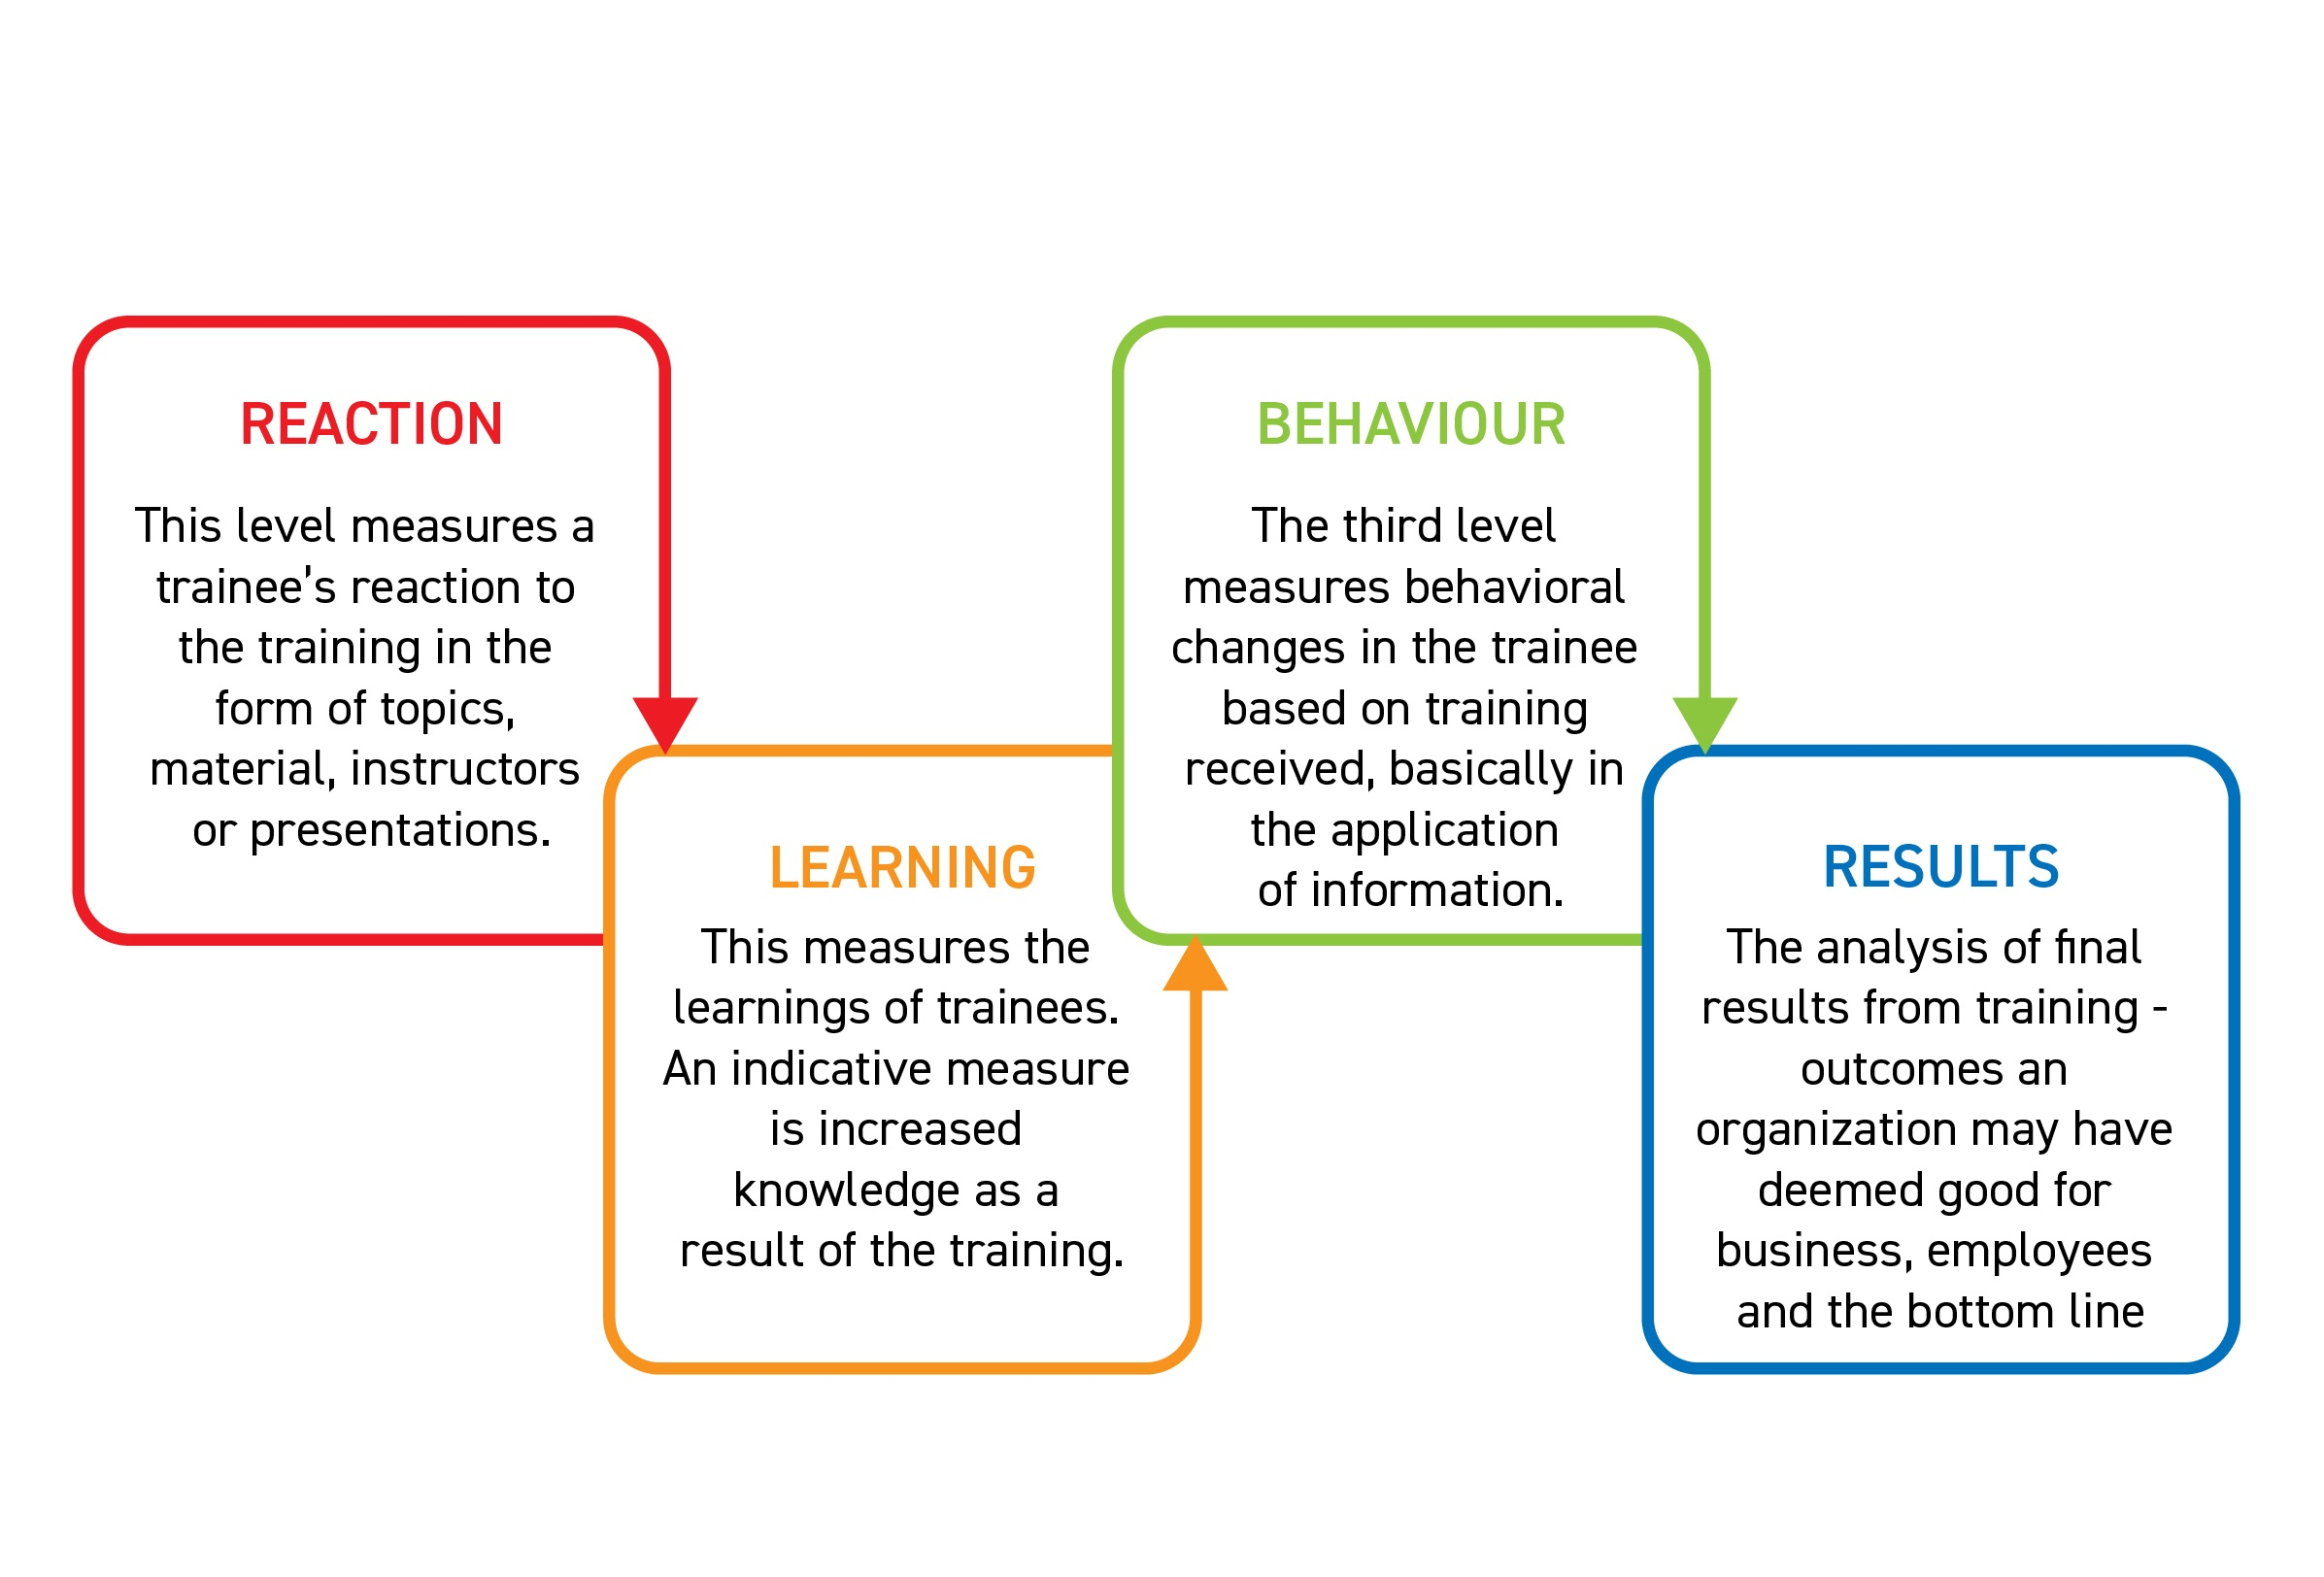 reaction-learning-behaviour-results